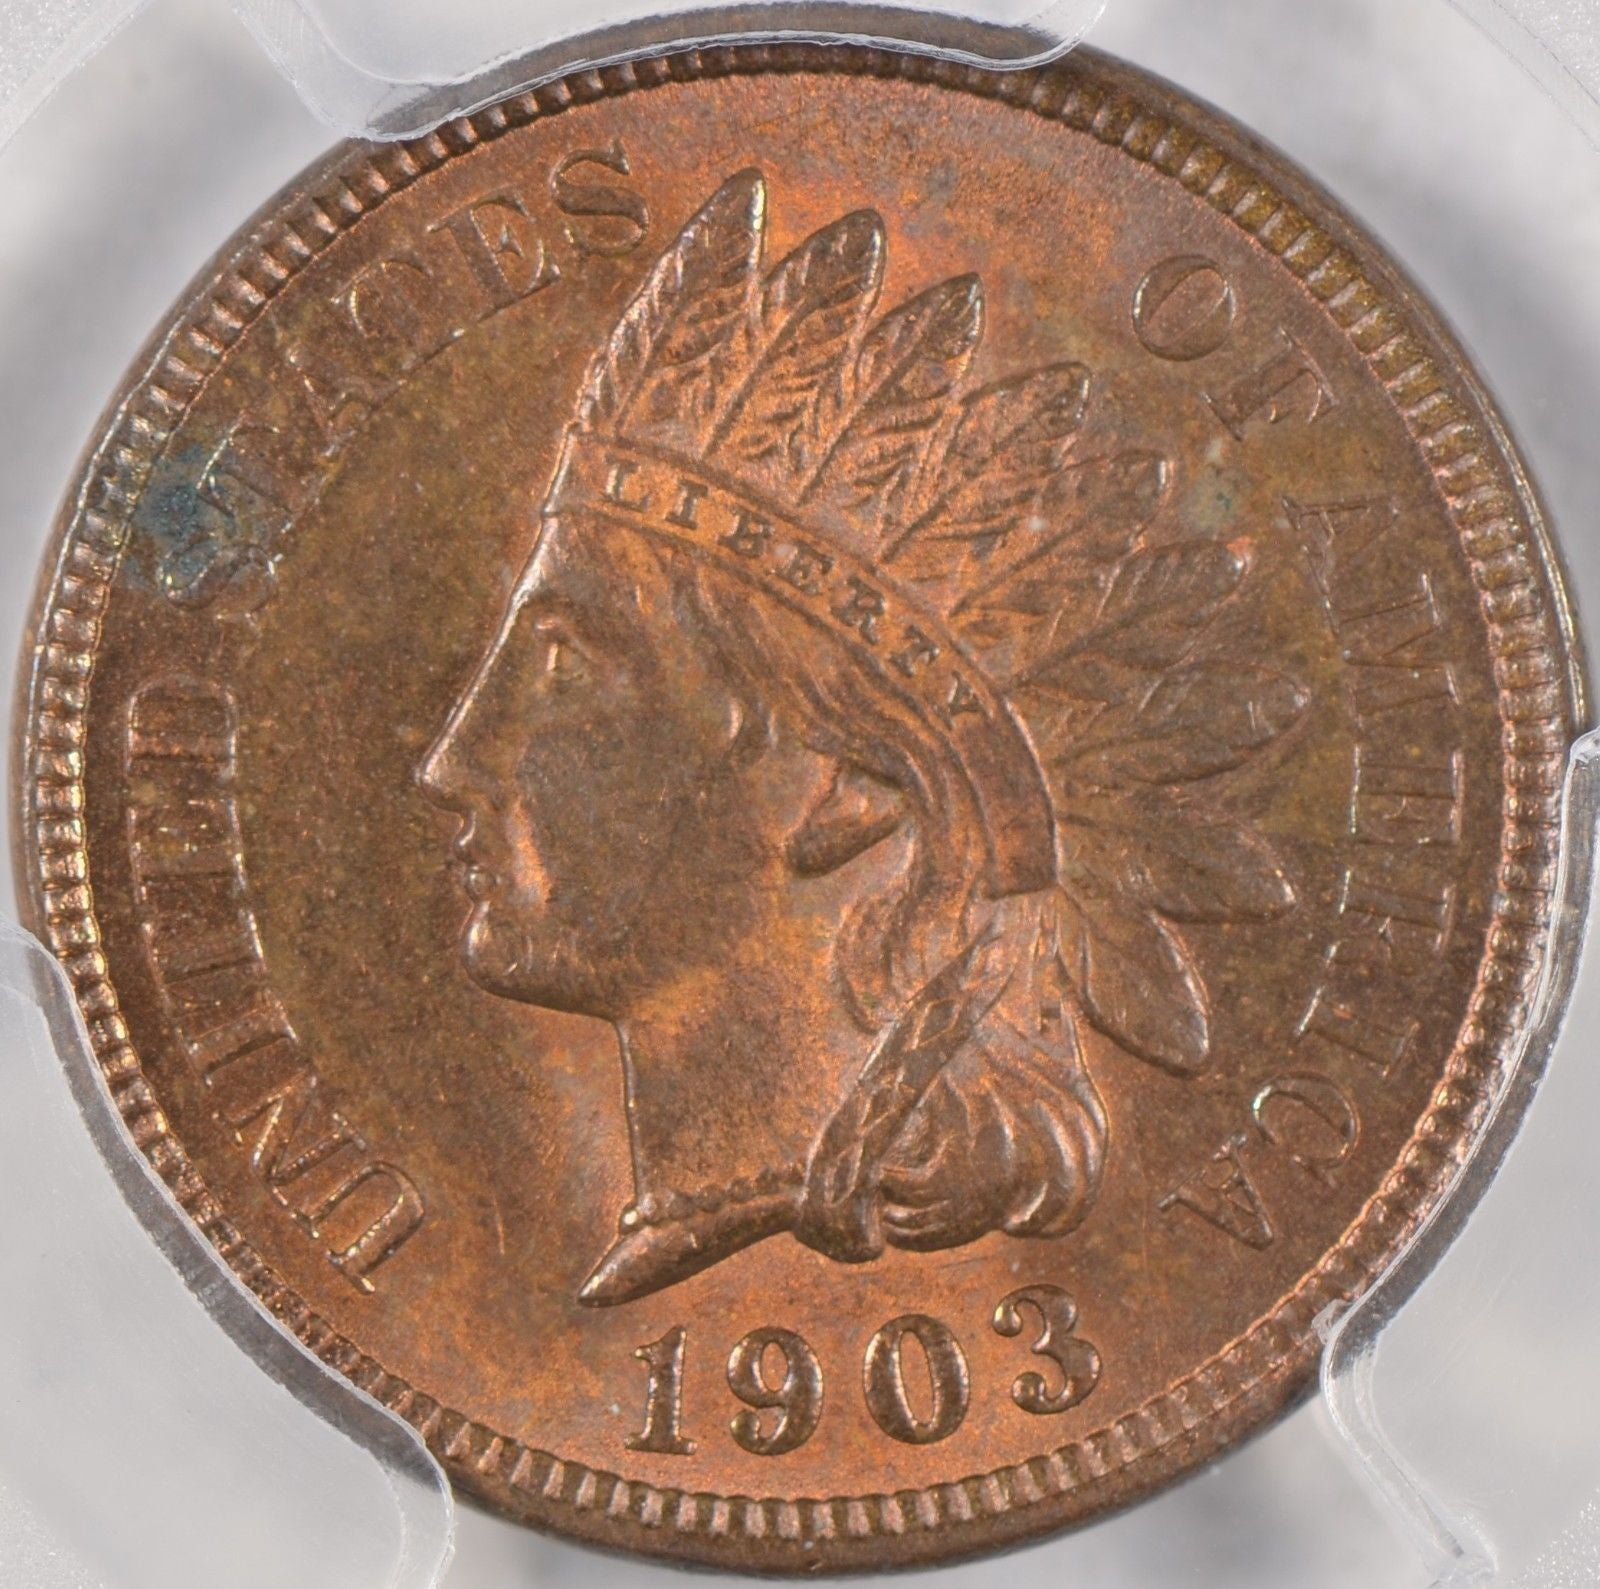 1903 Indian Cent PCGS MS63RB